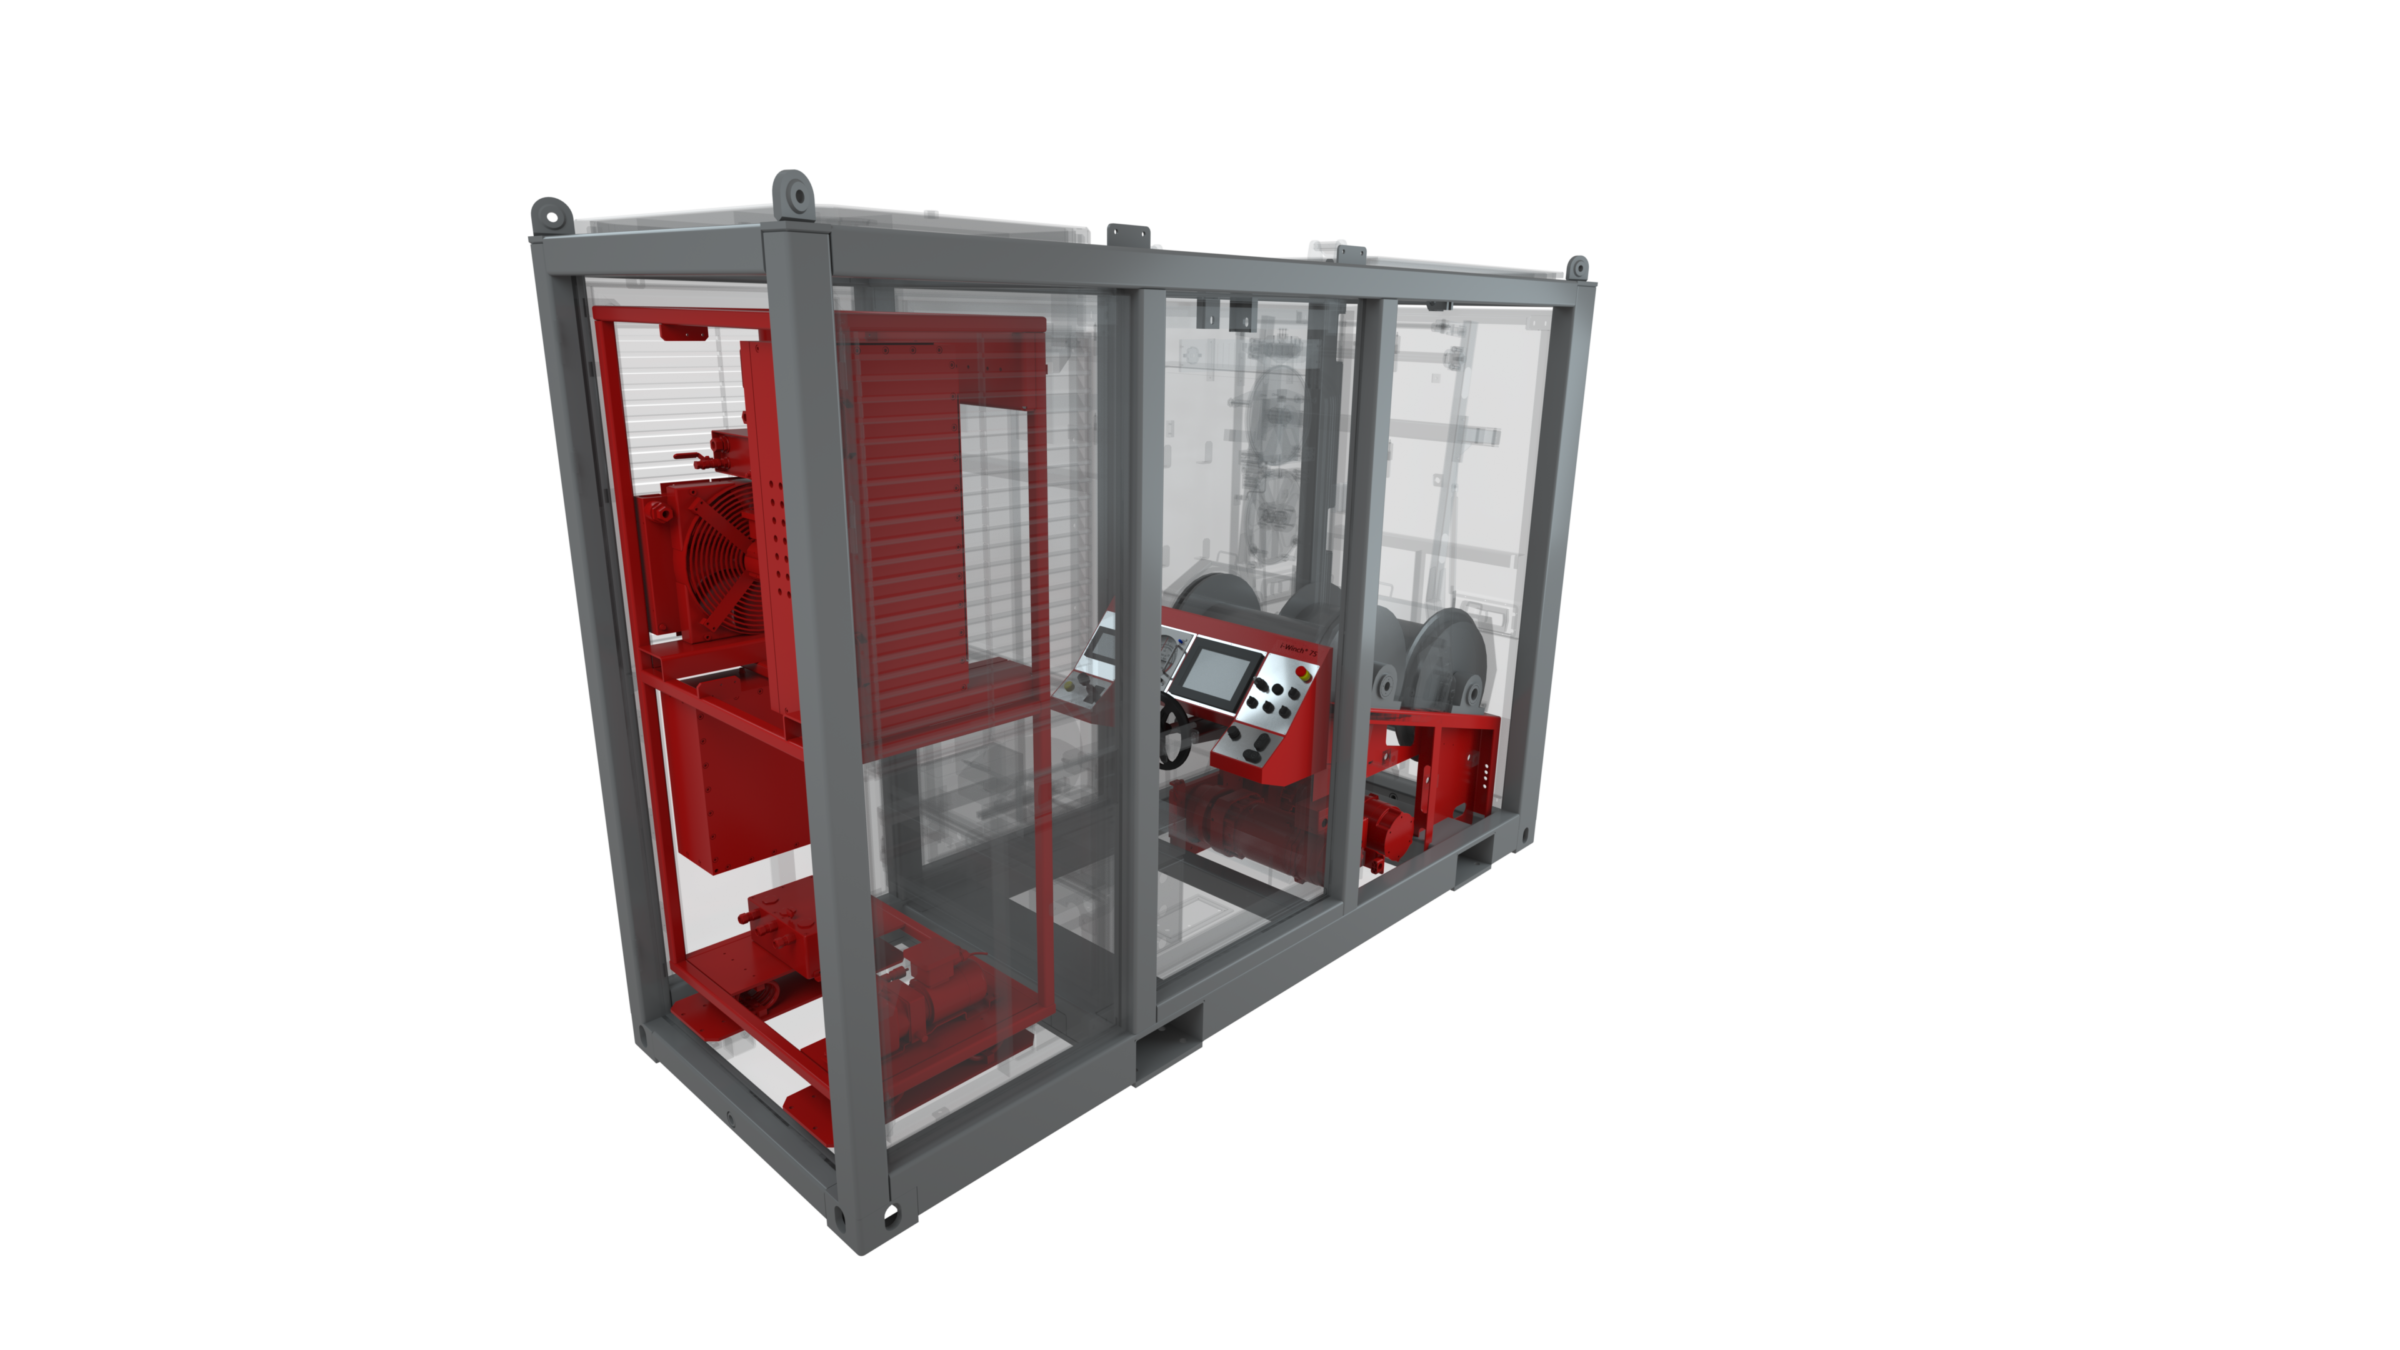 Paradigm Launches Ultra-Low Carbon Well Intervention Winch Solution for Capex-Constrained Oilfield Services Market